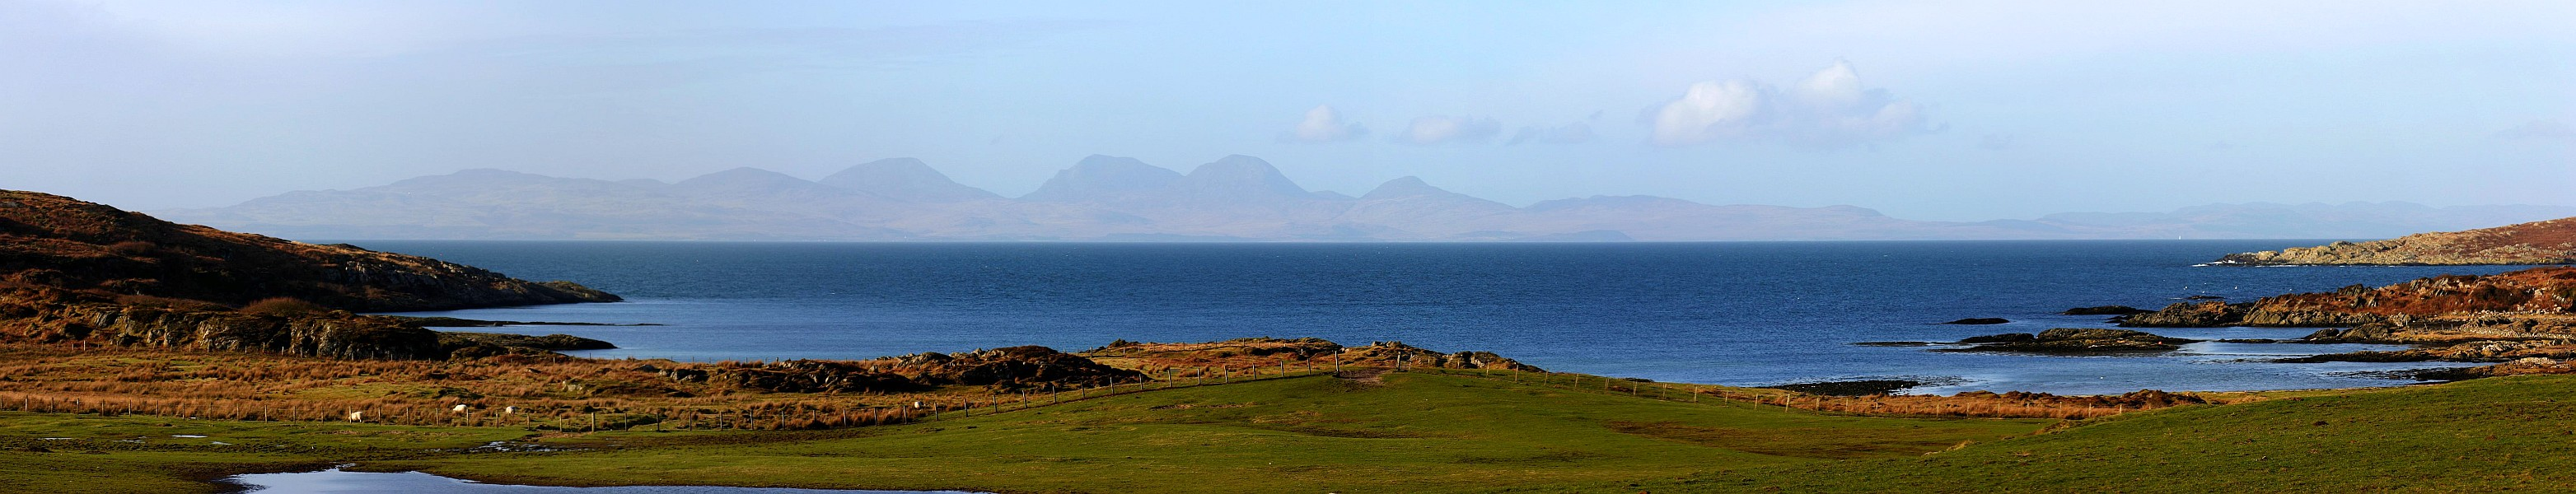 Isle of Jura Seen from Isle of Gigha Panorama Picture